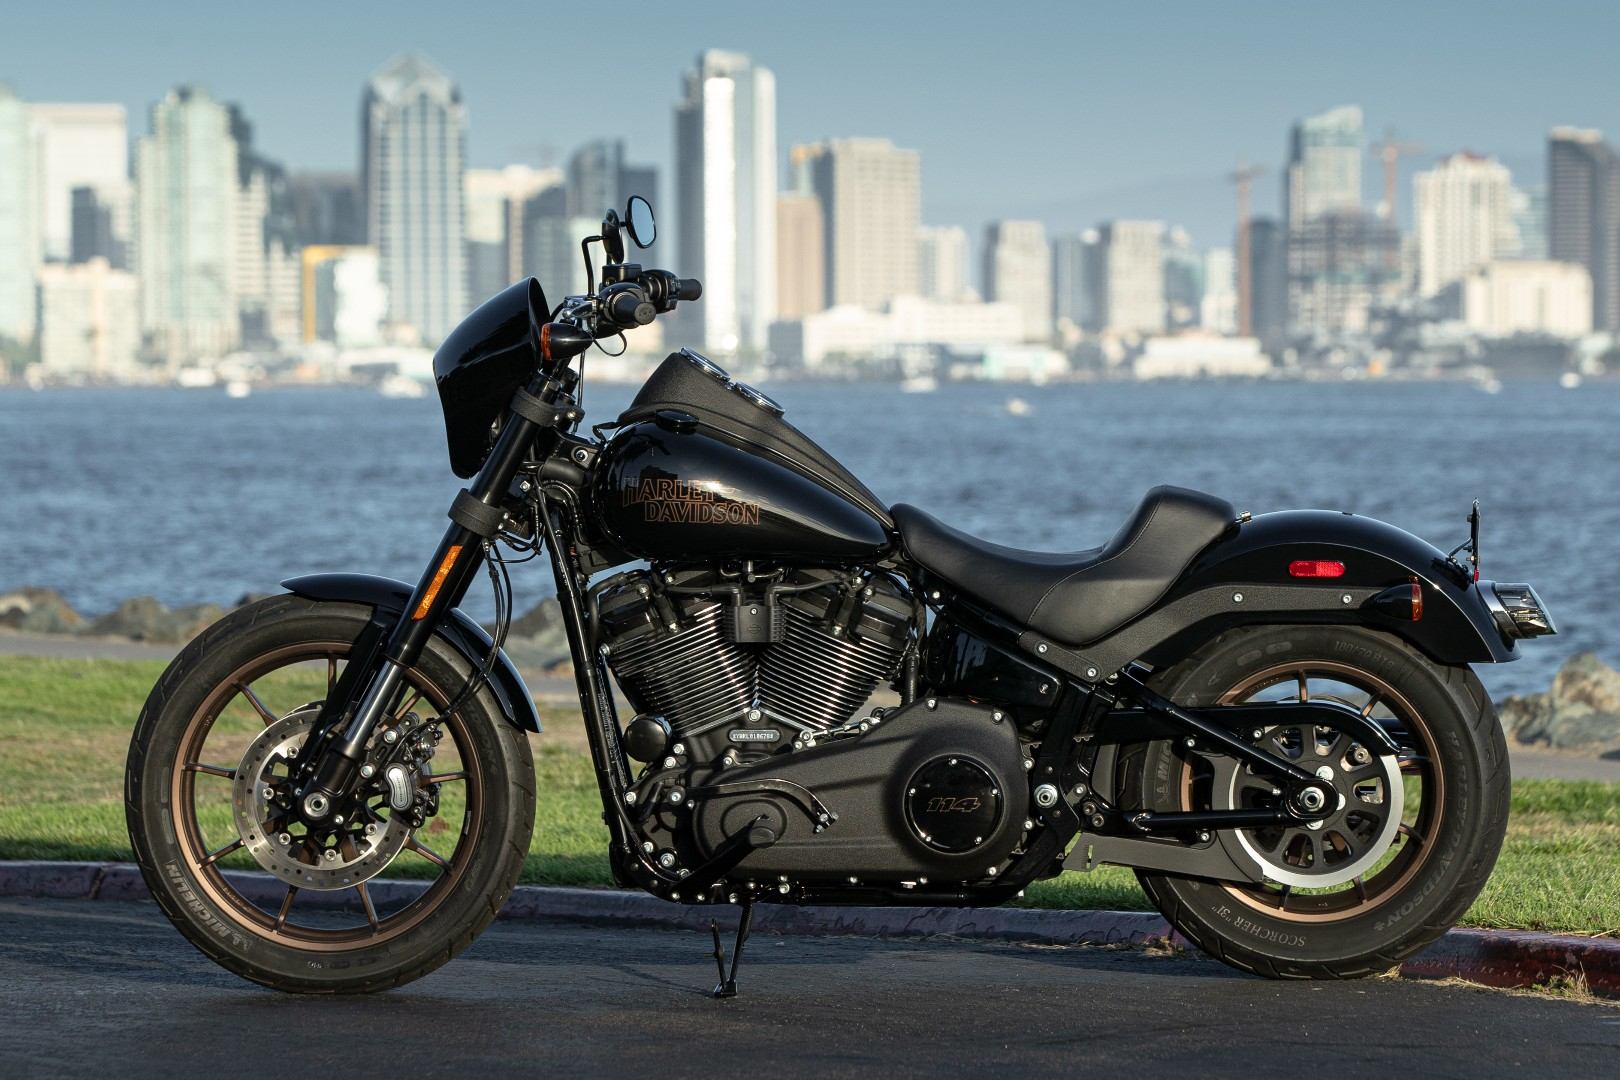 2020 harley davidson low rider s review